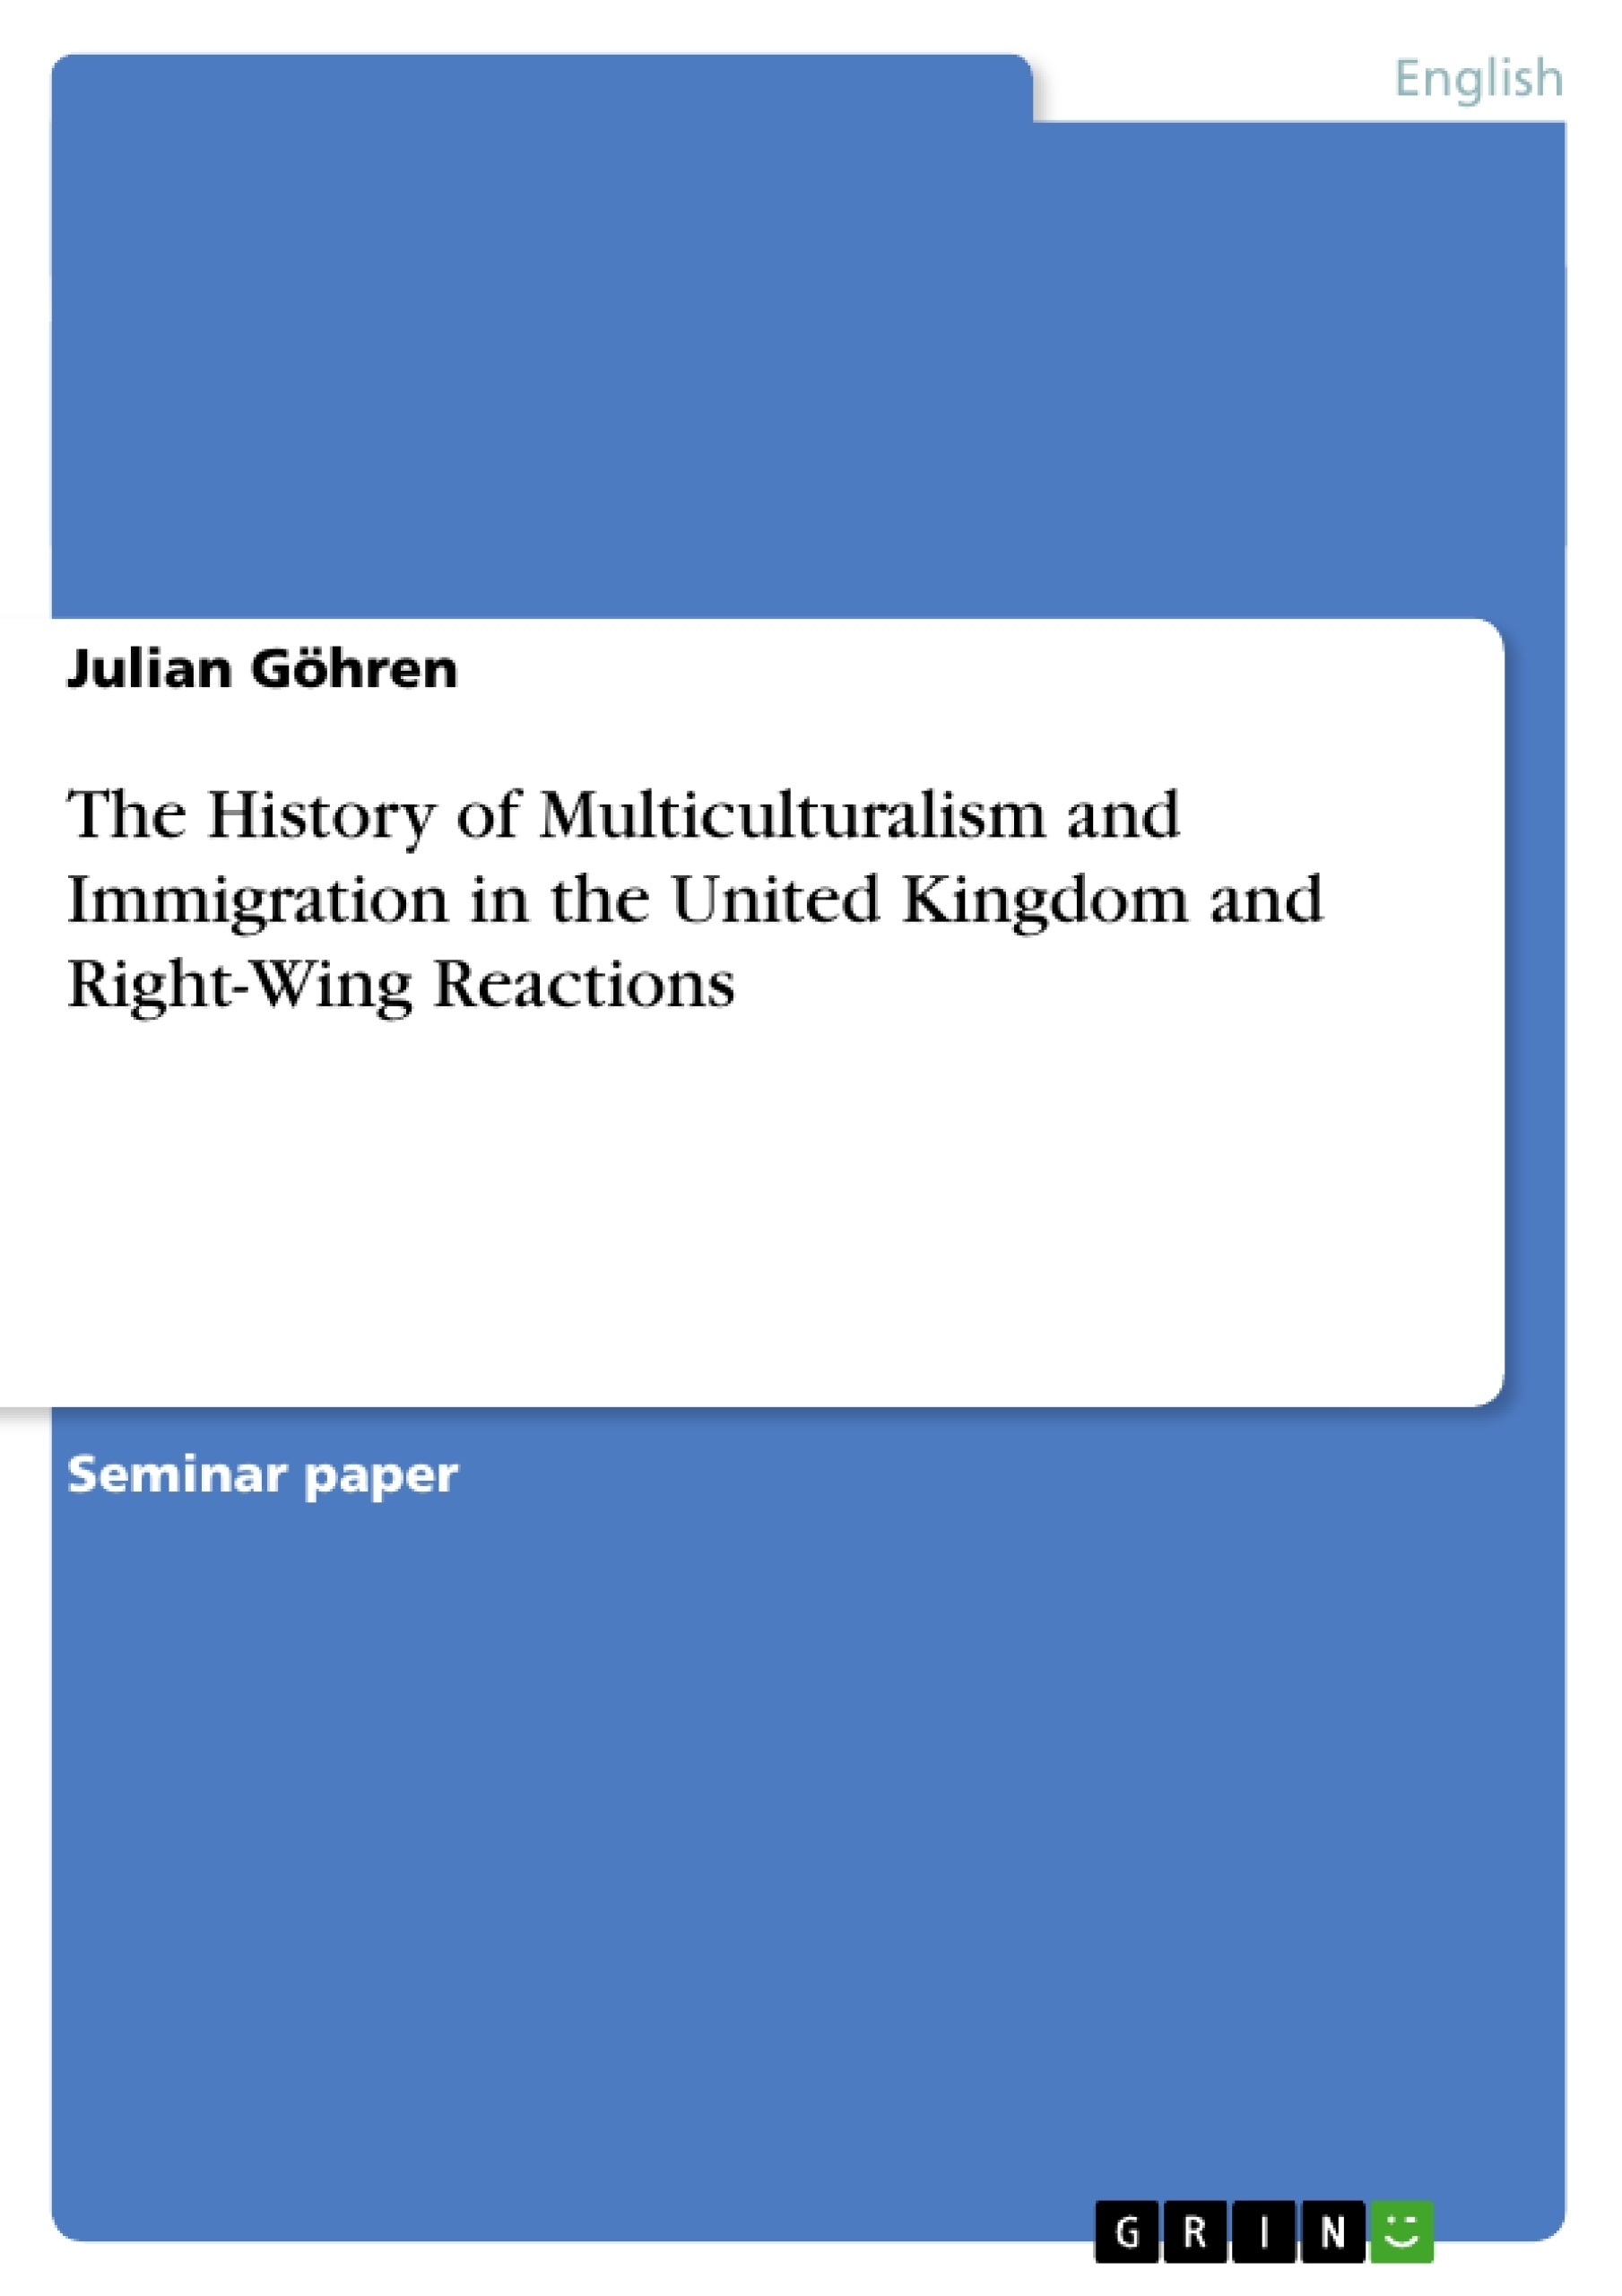 the history of multiculturalism and immigration in the united the history of multiculturalism and immigration in the united publish your master s thesis bachelor s thesis essay or term paper